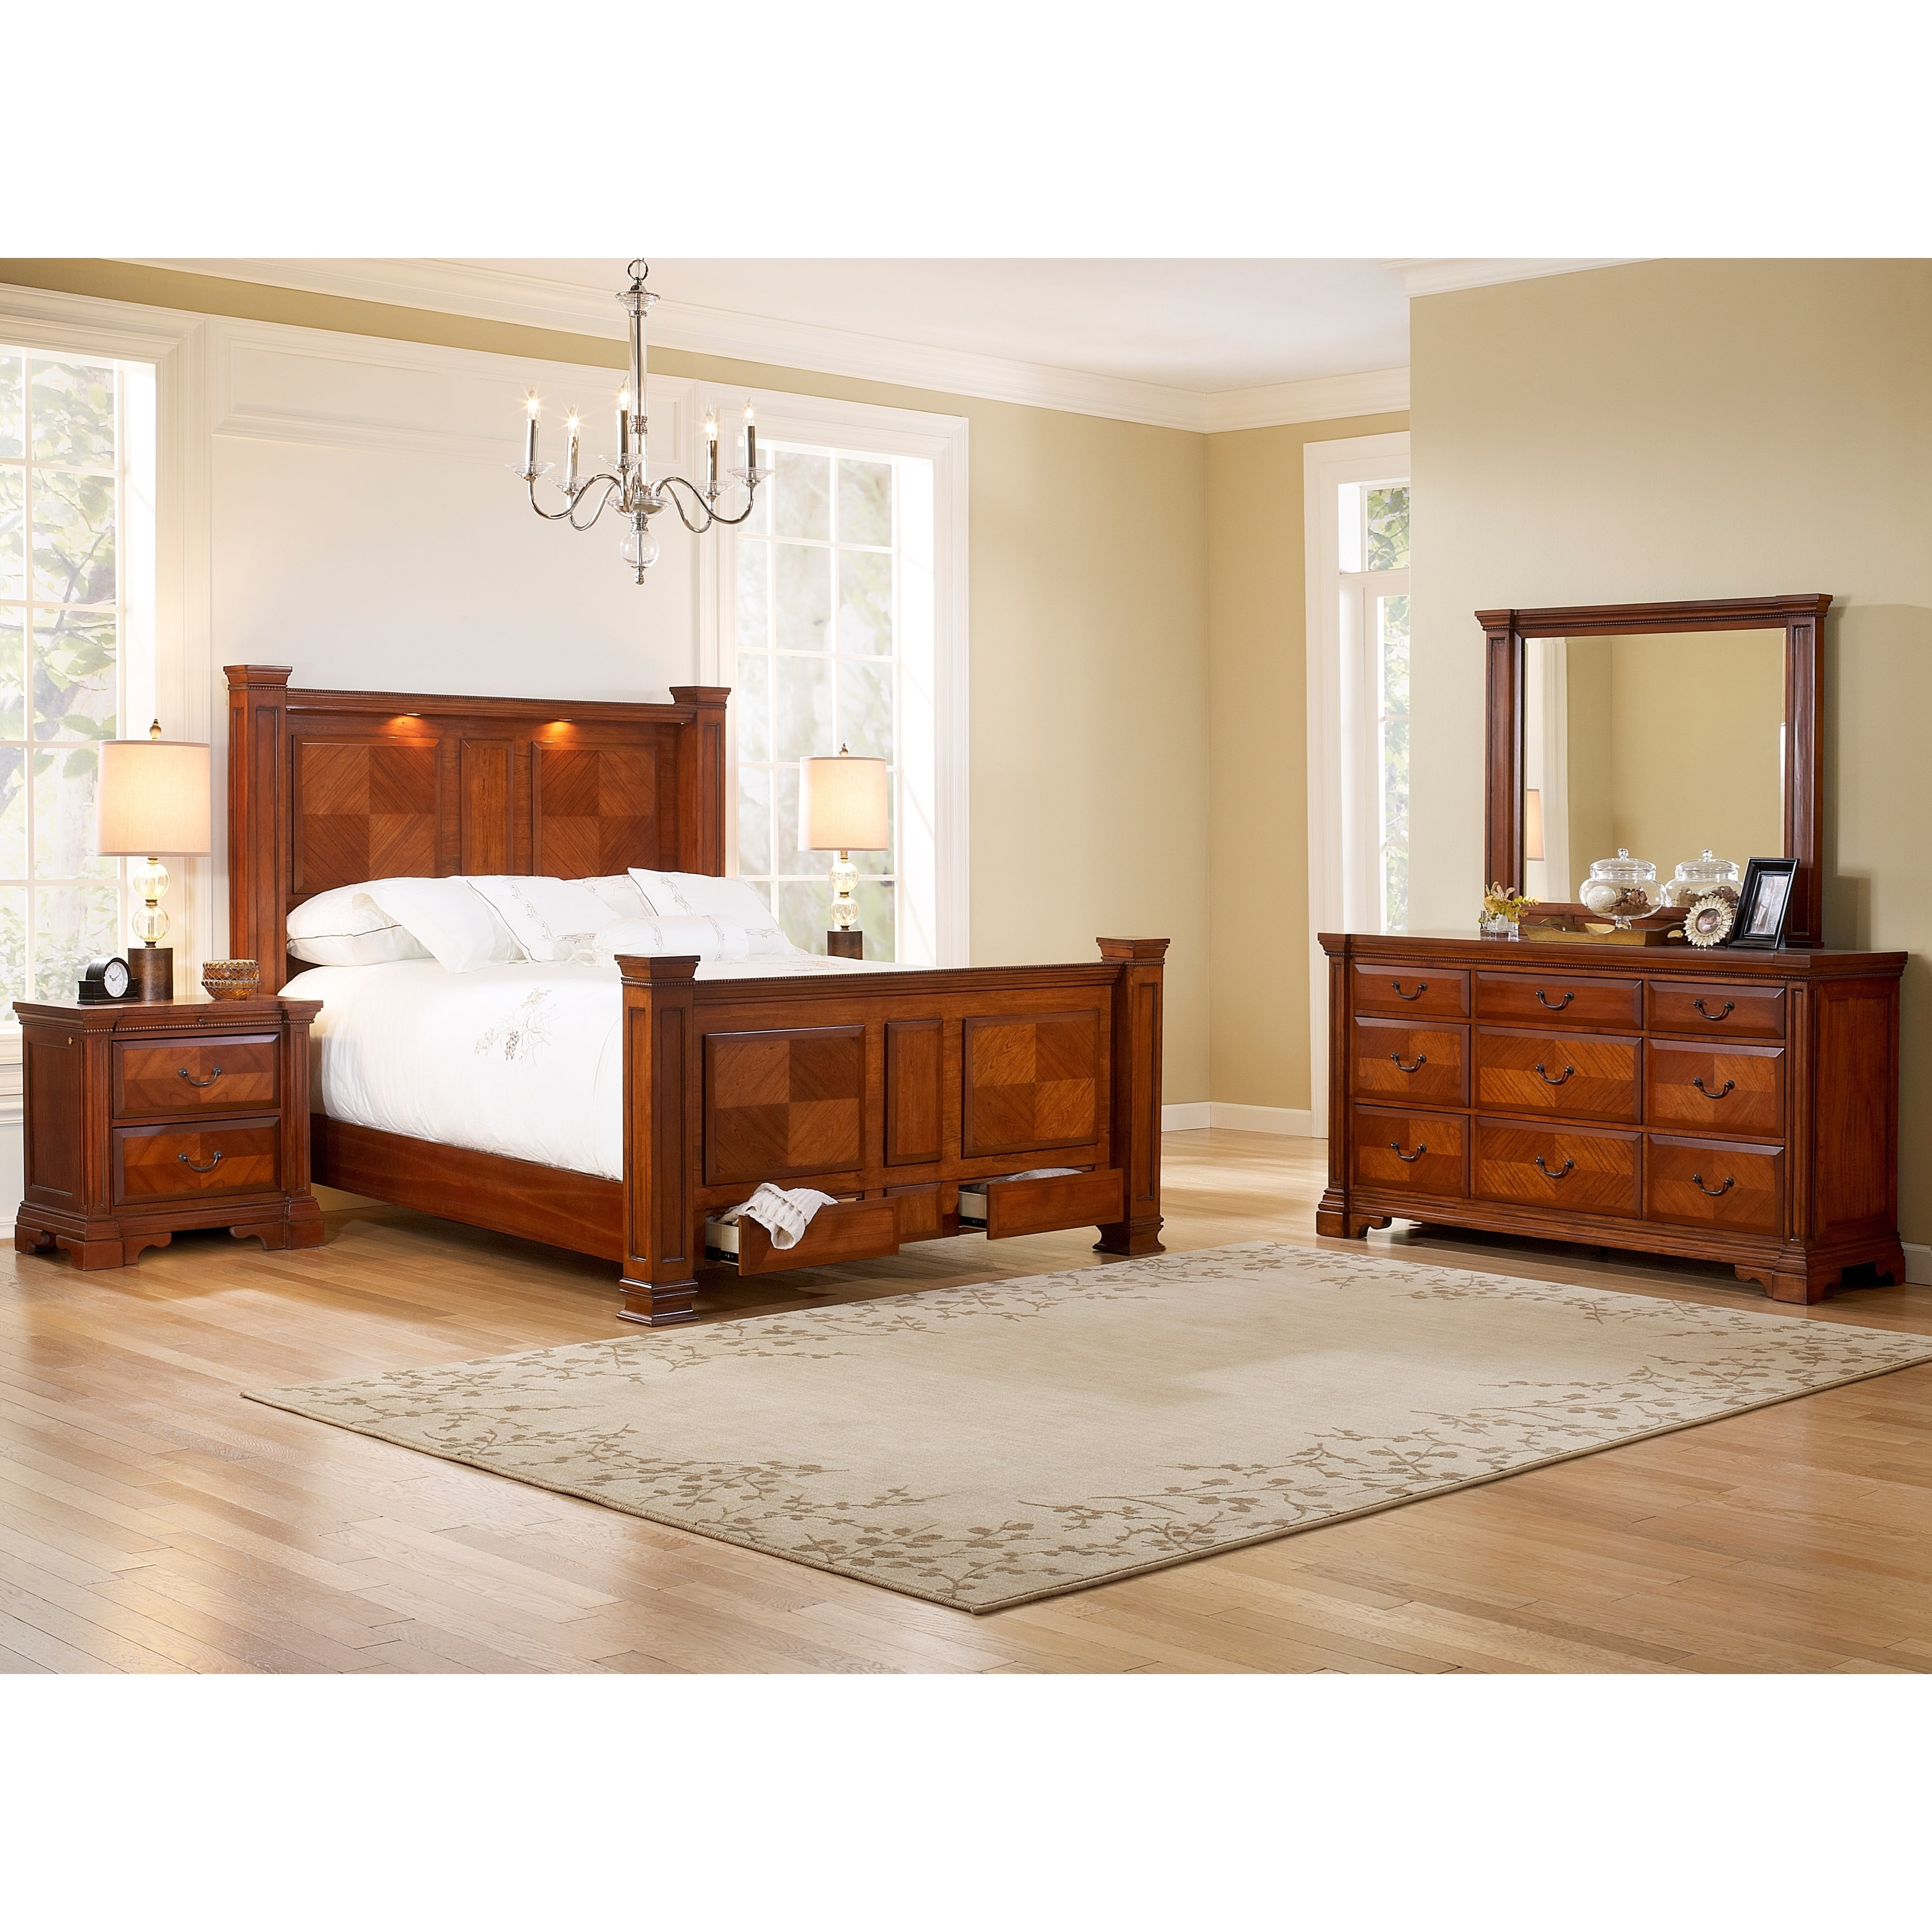 Accent Furniture Smithfield Bed Dresser Mirror Nightstands Bedroom Set